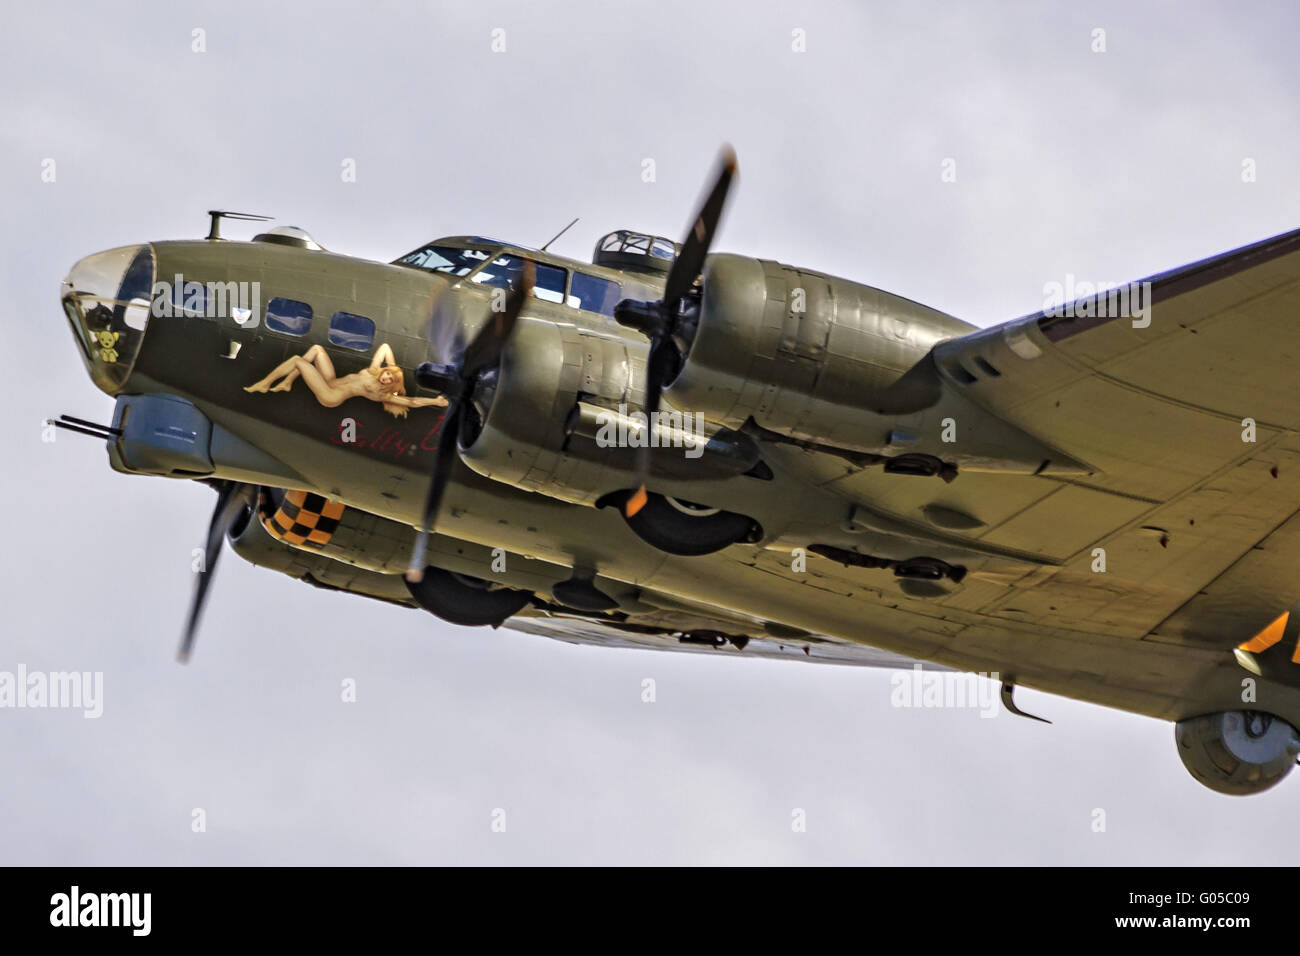 Aircraft Boeing B-17 Flying Fortress Duxford UK - Stock Image